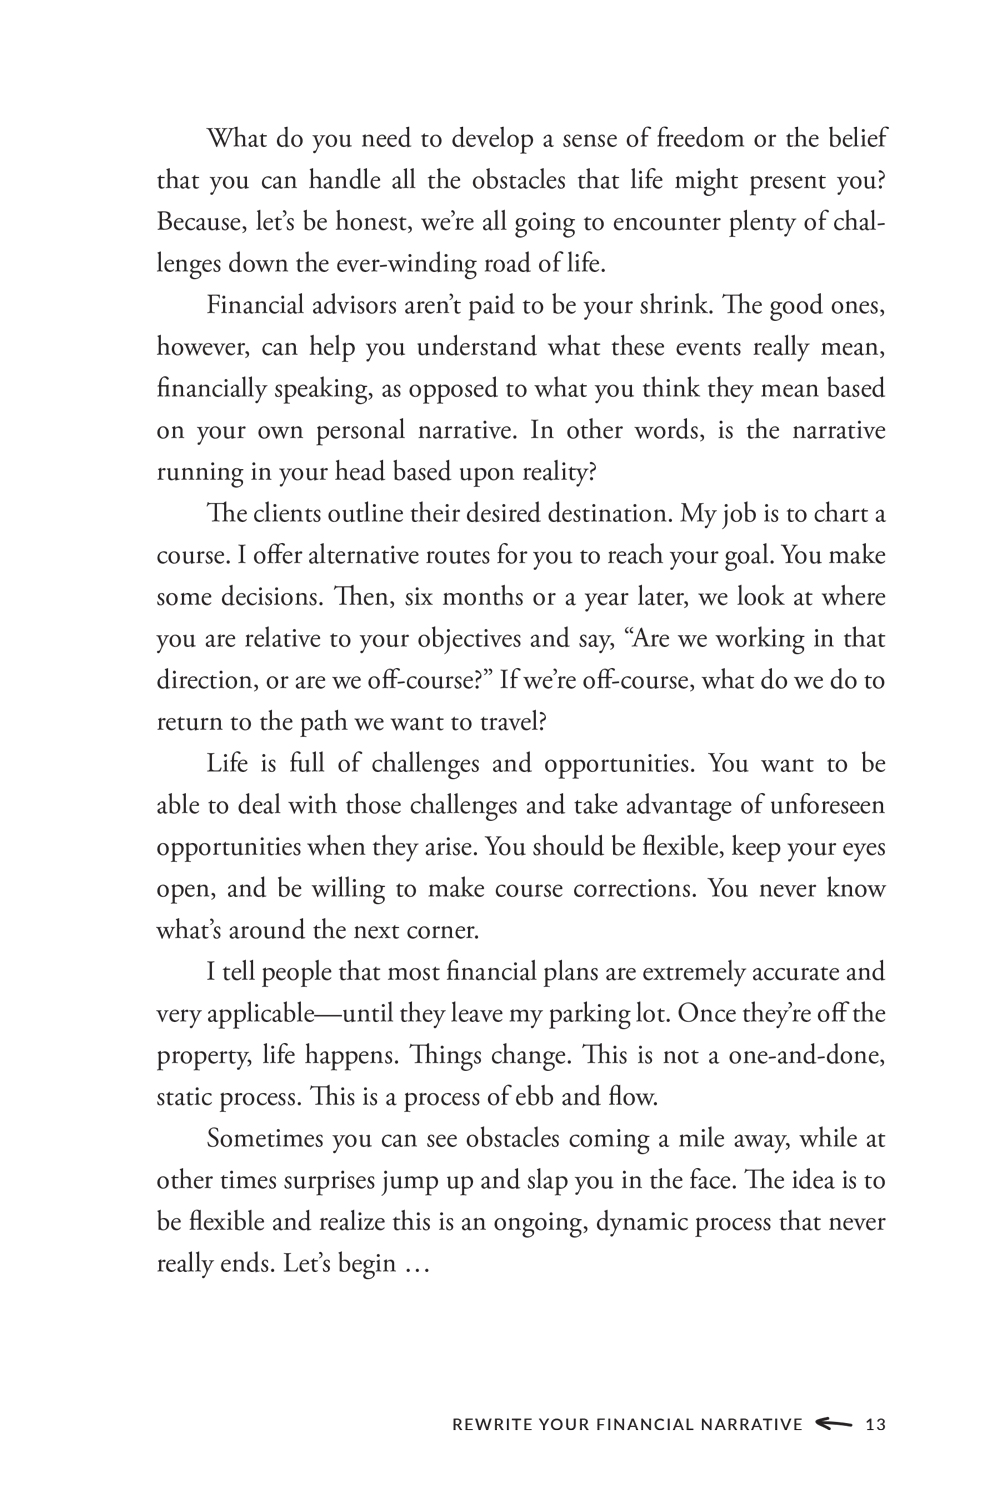 Rewrite_Your_Financial_Narrative_Page_017.jpg